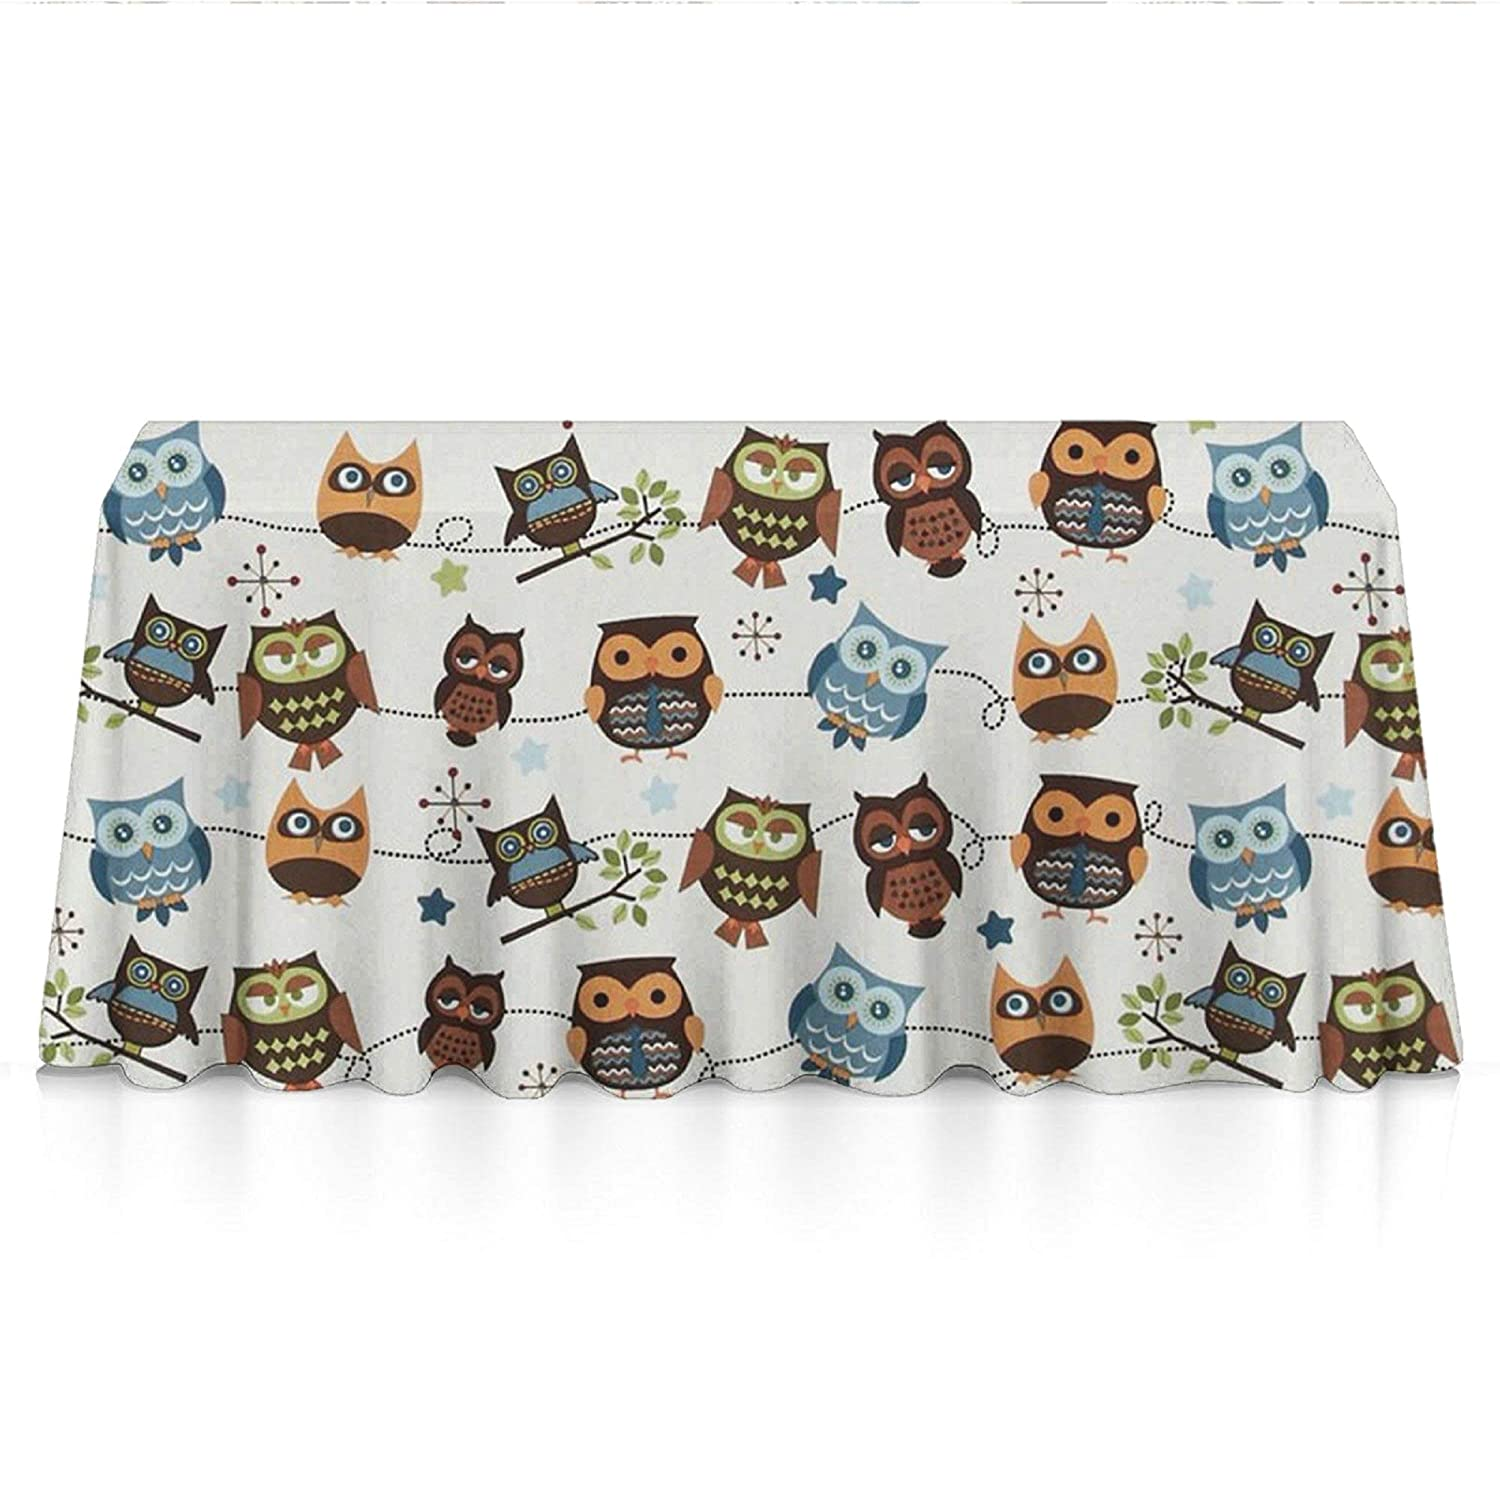 Rectangle Tablecloth - 60x90 Inch - Cute Owl Patterns Rectangular Table Cloth in Washable Polyester - Great for Buffet Table, Parties, Holiday Dinner, Wedding & More